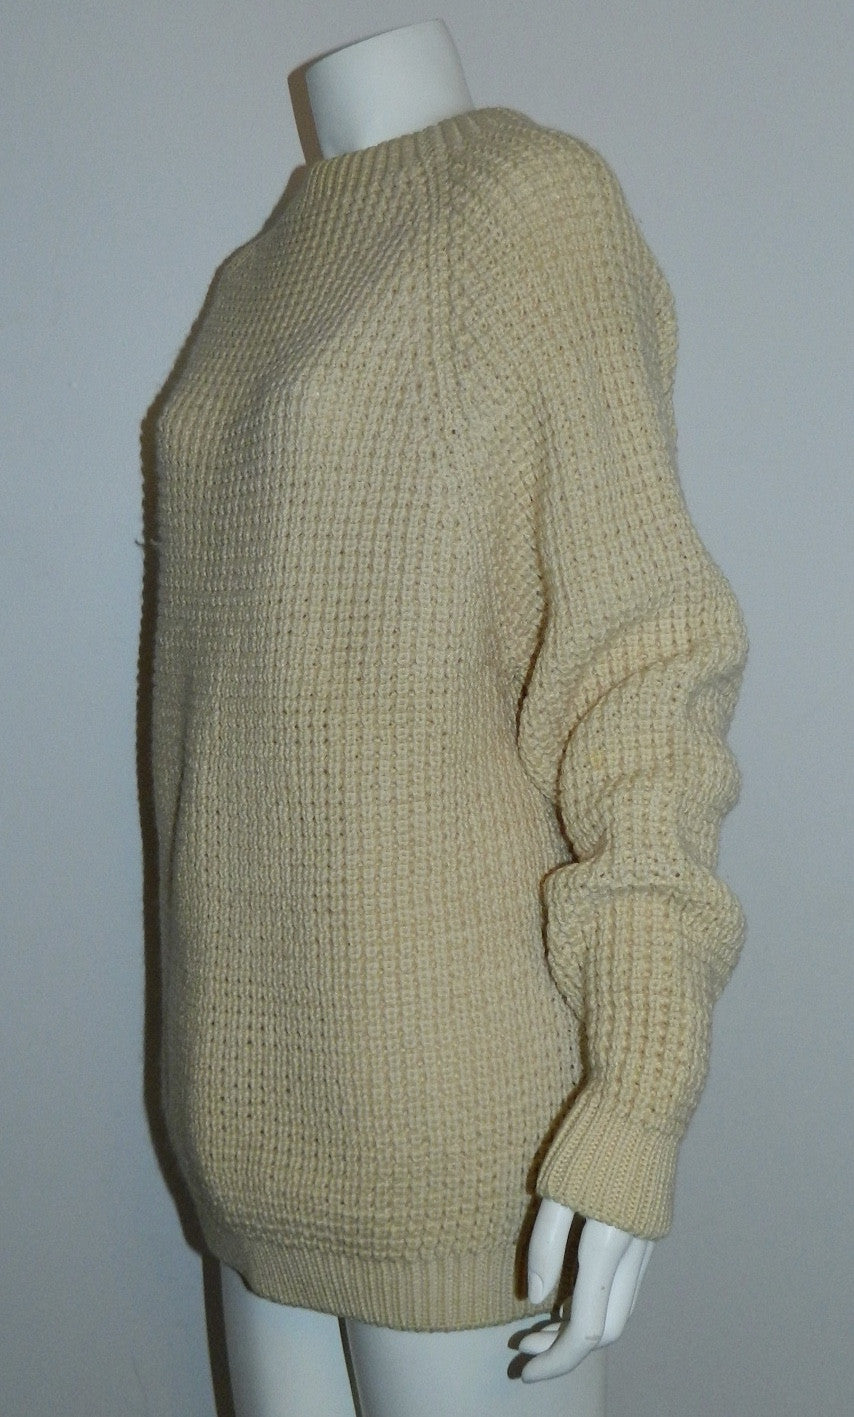 vintage FISHERMANS sweater 1970s Axello Denmark cream wool 52 / US M - L